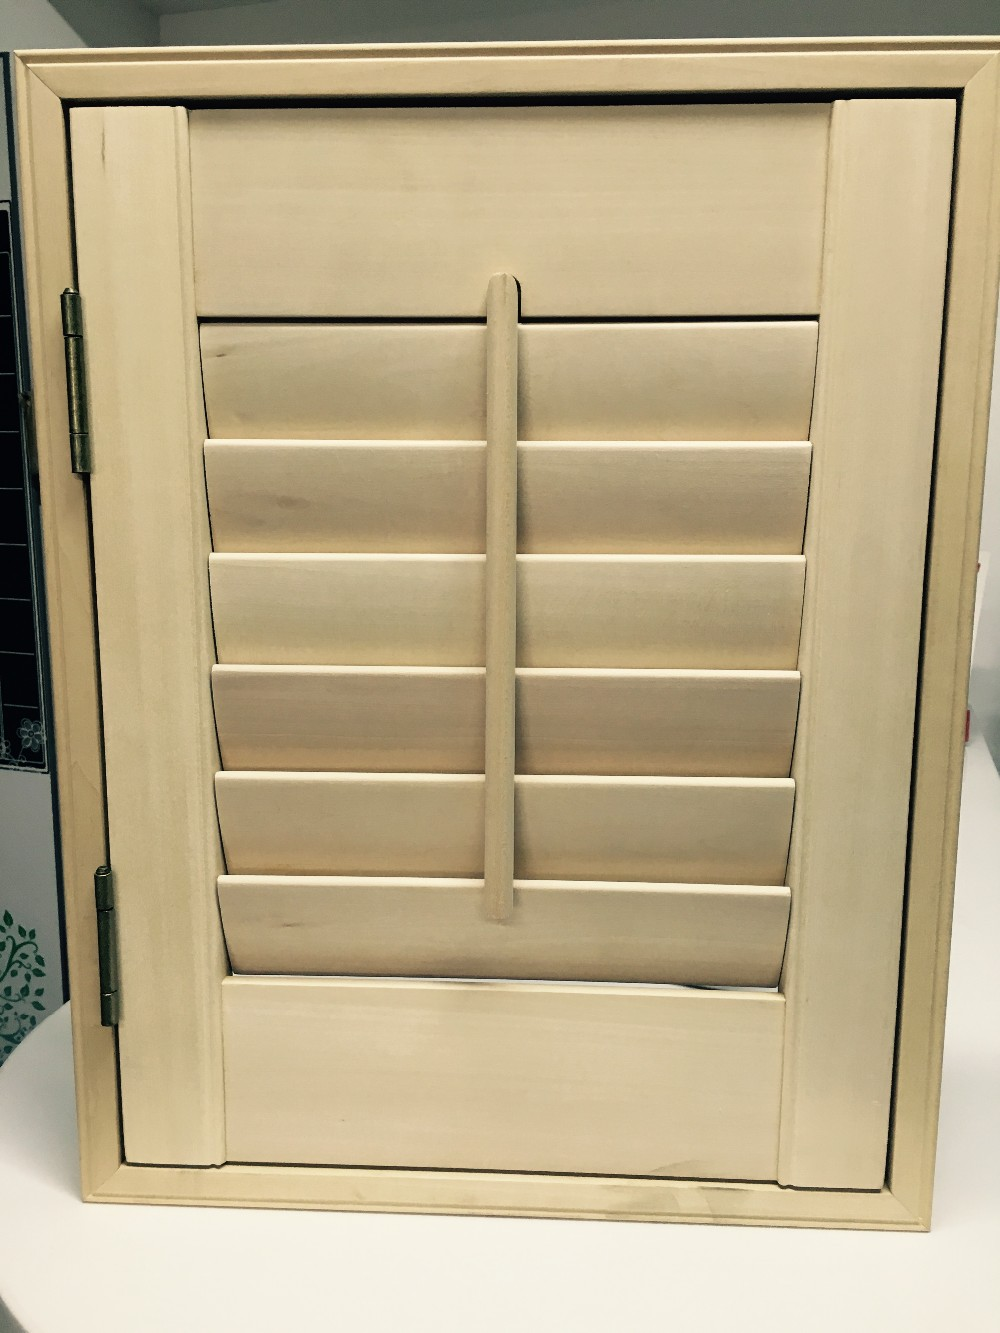 Amsterdam Style Vertical Interior Louvered Wooden Shutters Wood Plantation Shutter Buy